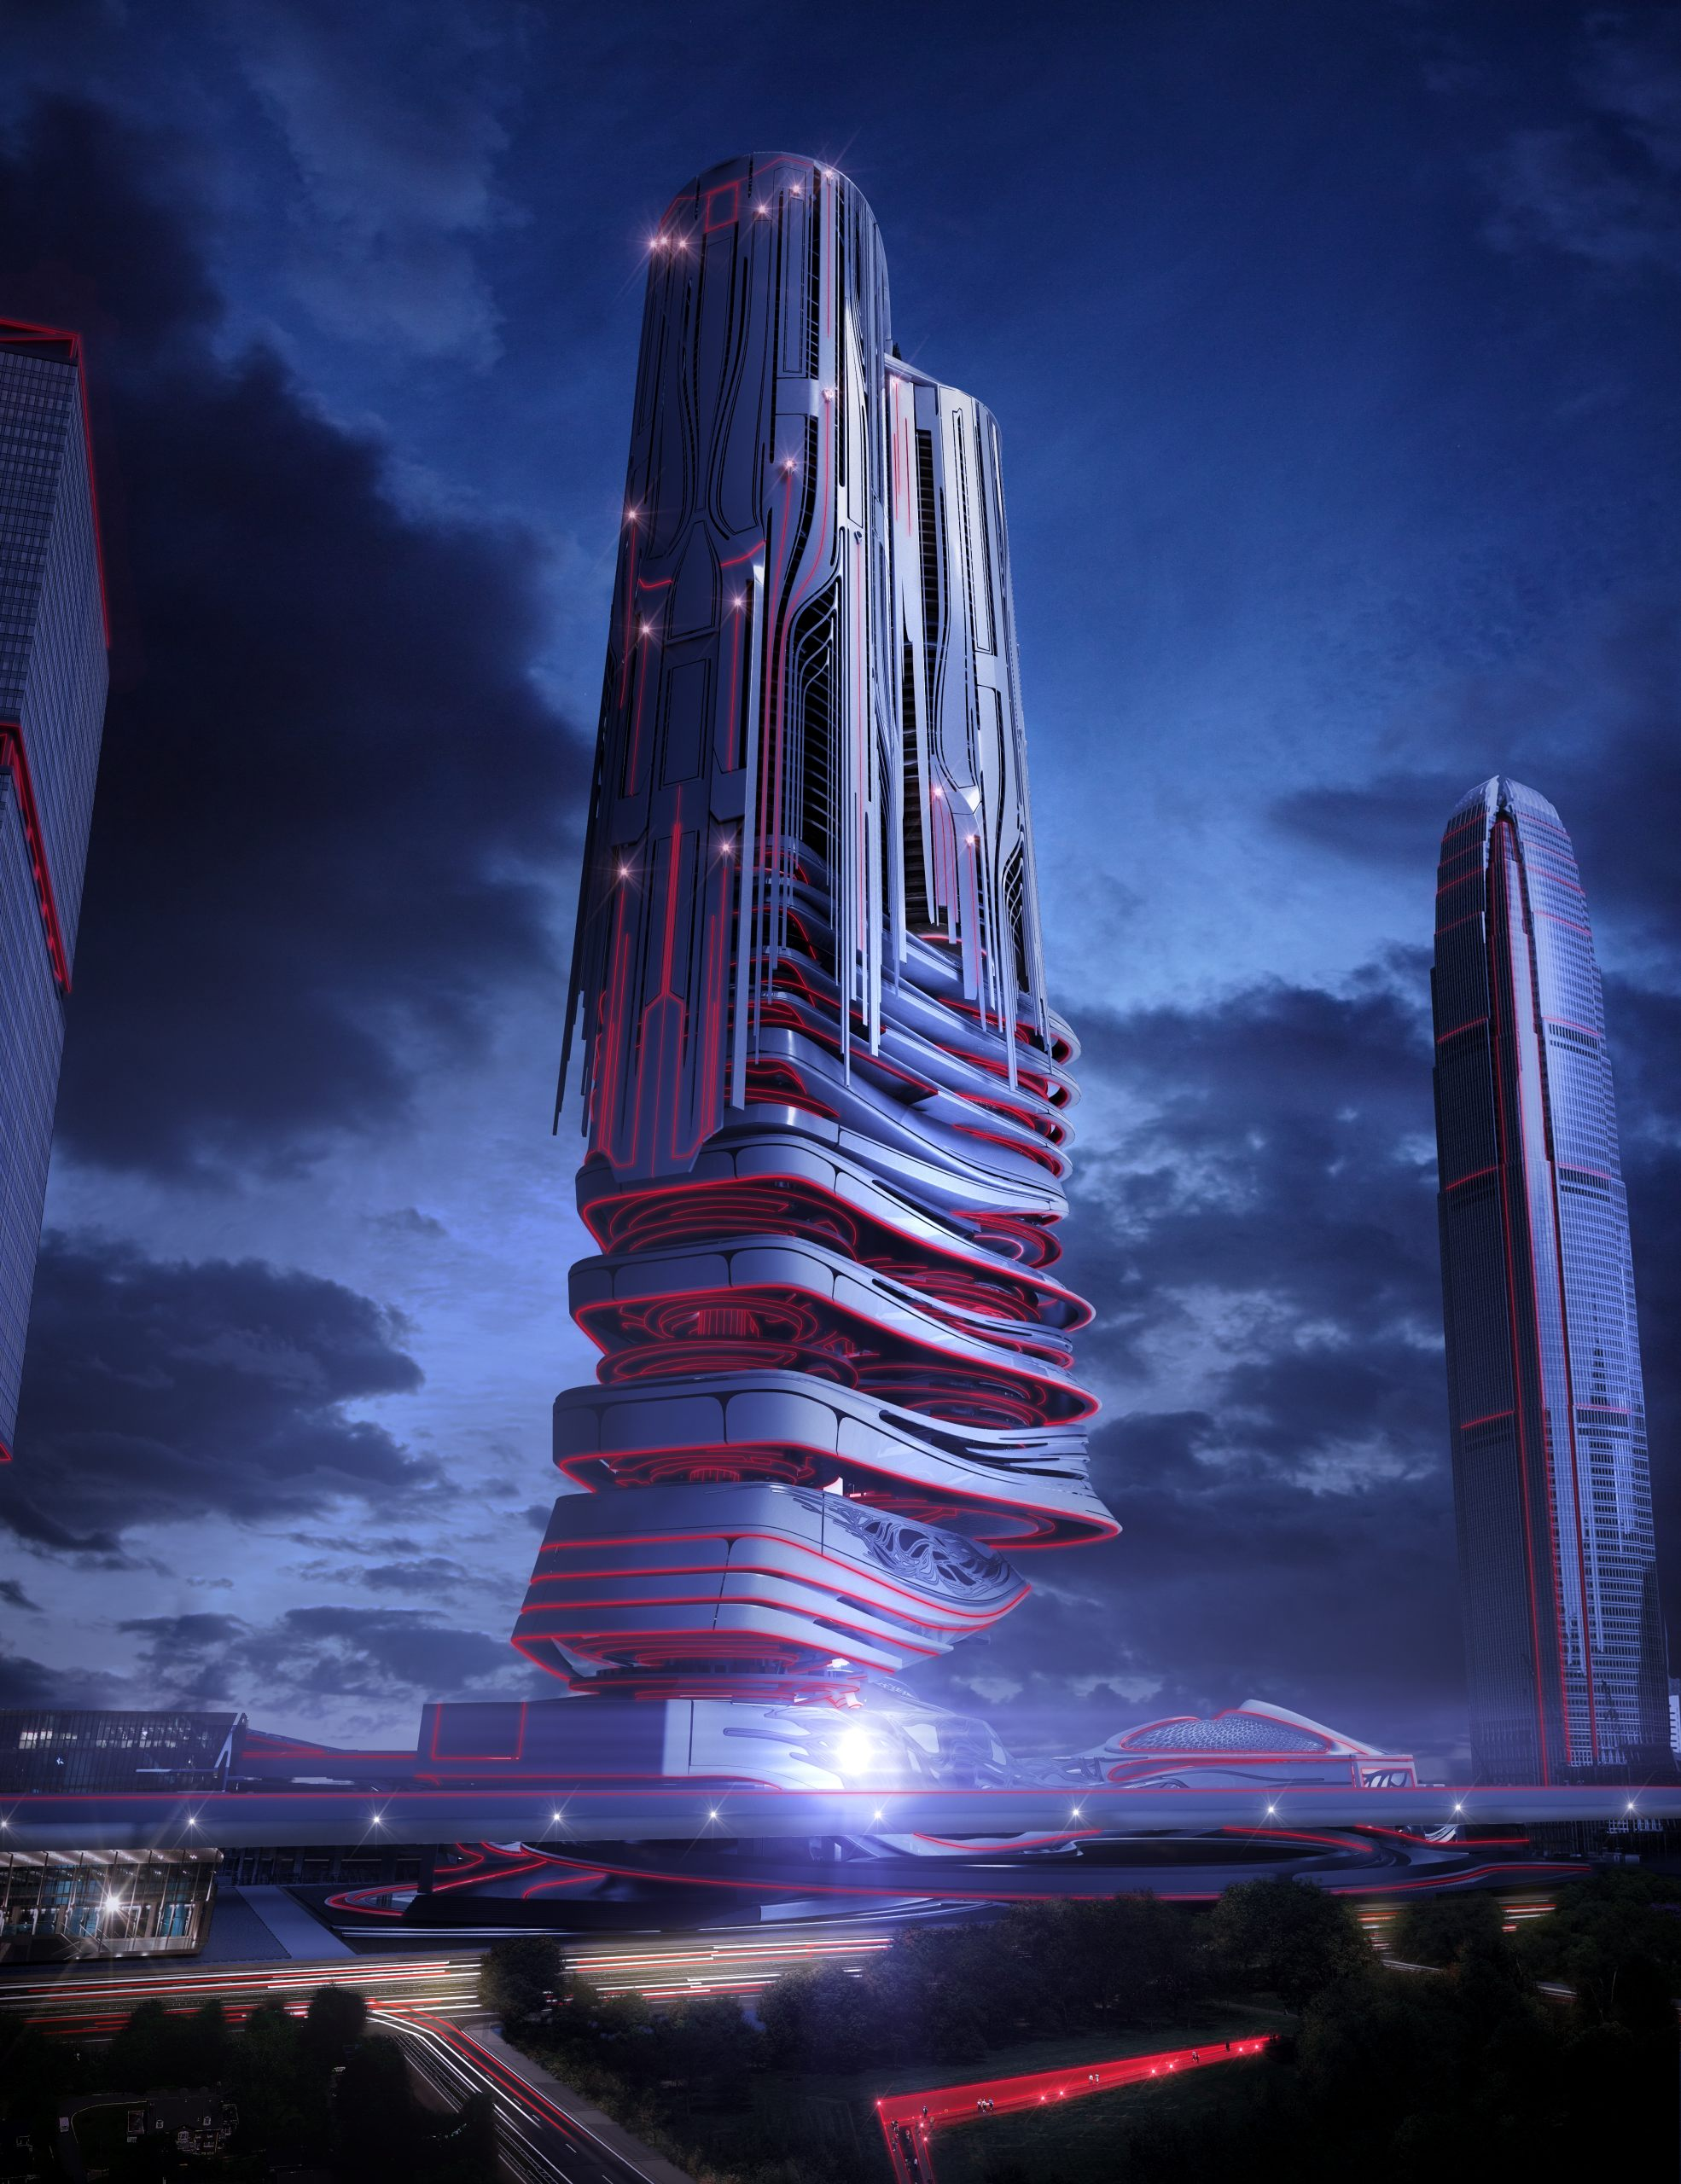 Evolo competition futuristic skyscraper flyingarchitecture Concept buildings